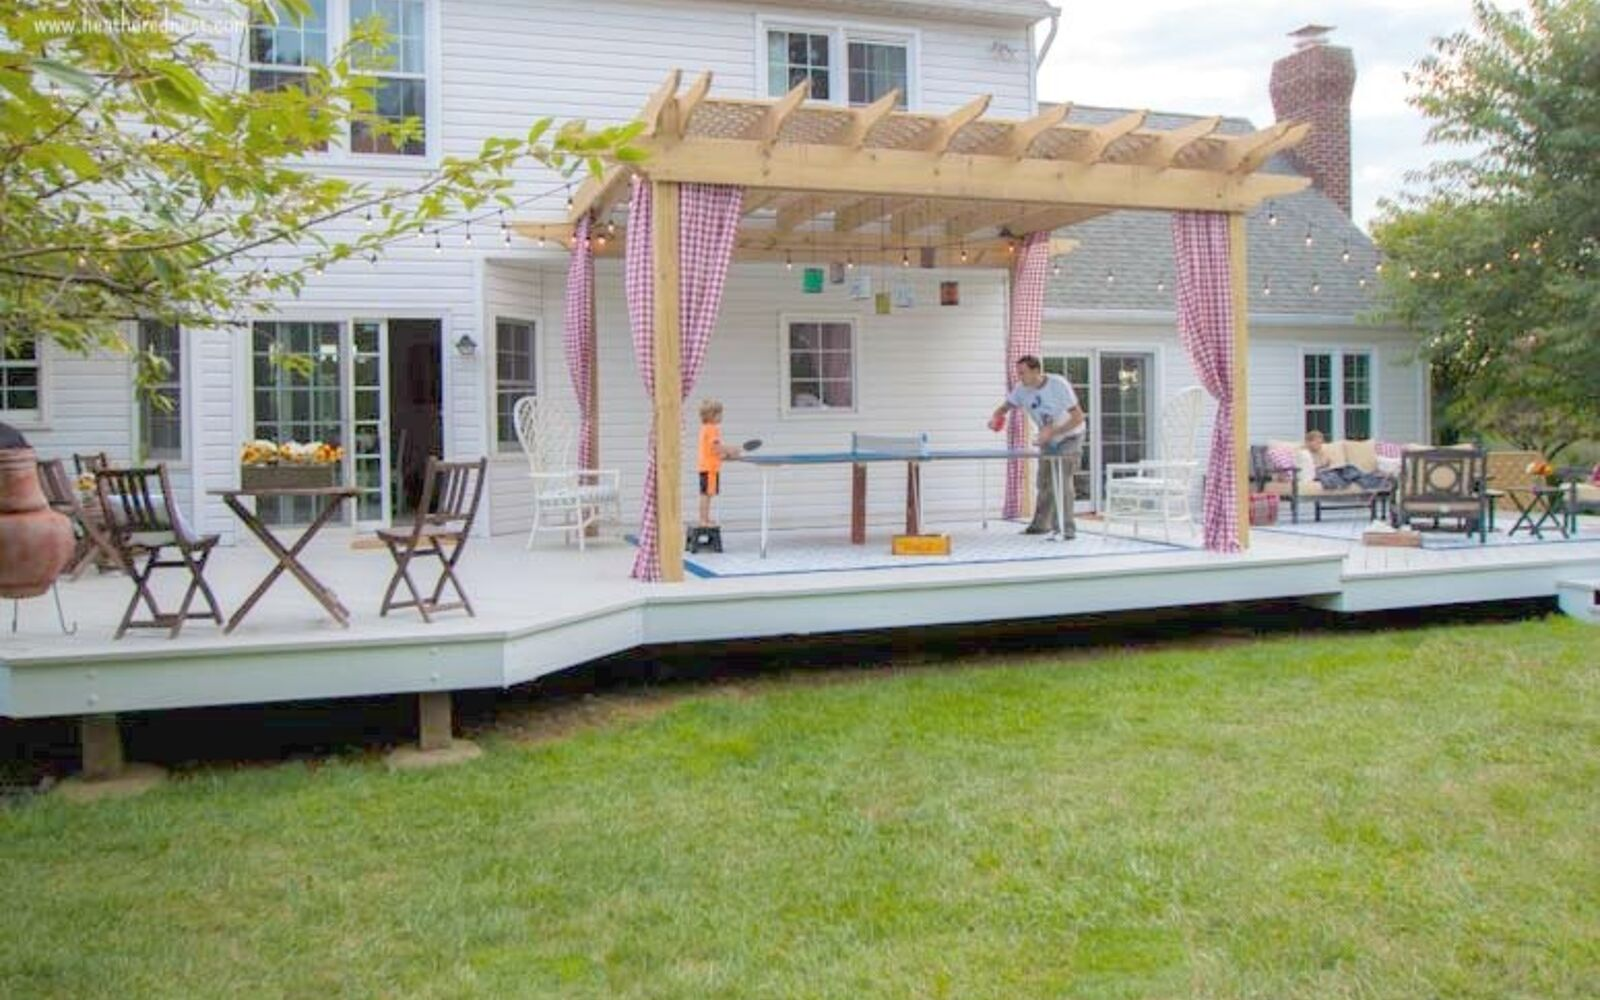 s 11 tips tricks for making your diy deck look amazing, decks, Toss the railings for an accessible open deck